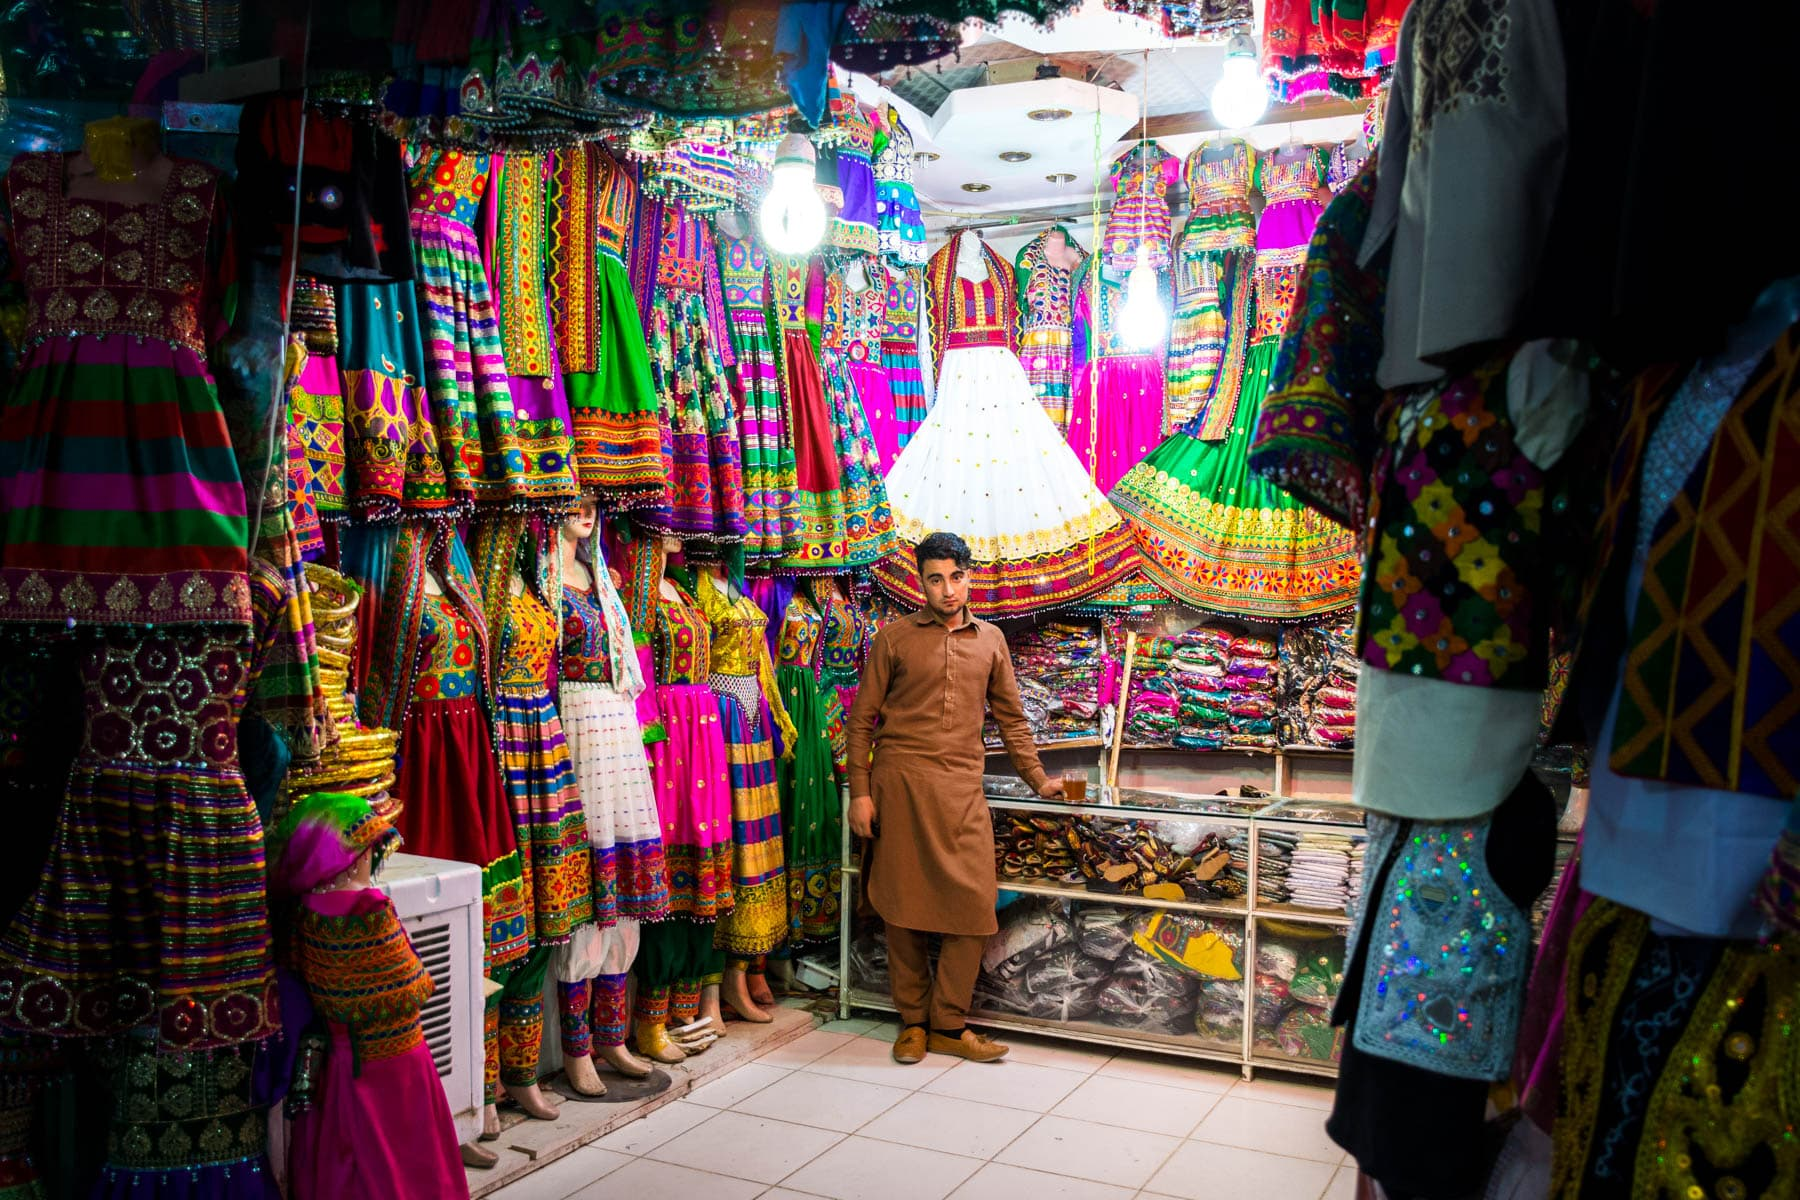 Photos of Mazar-i-Sharif, Afghanistan - A boy selling colorful women's clothes in a central bazaar - Lost With Purpose